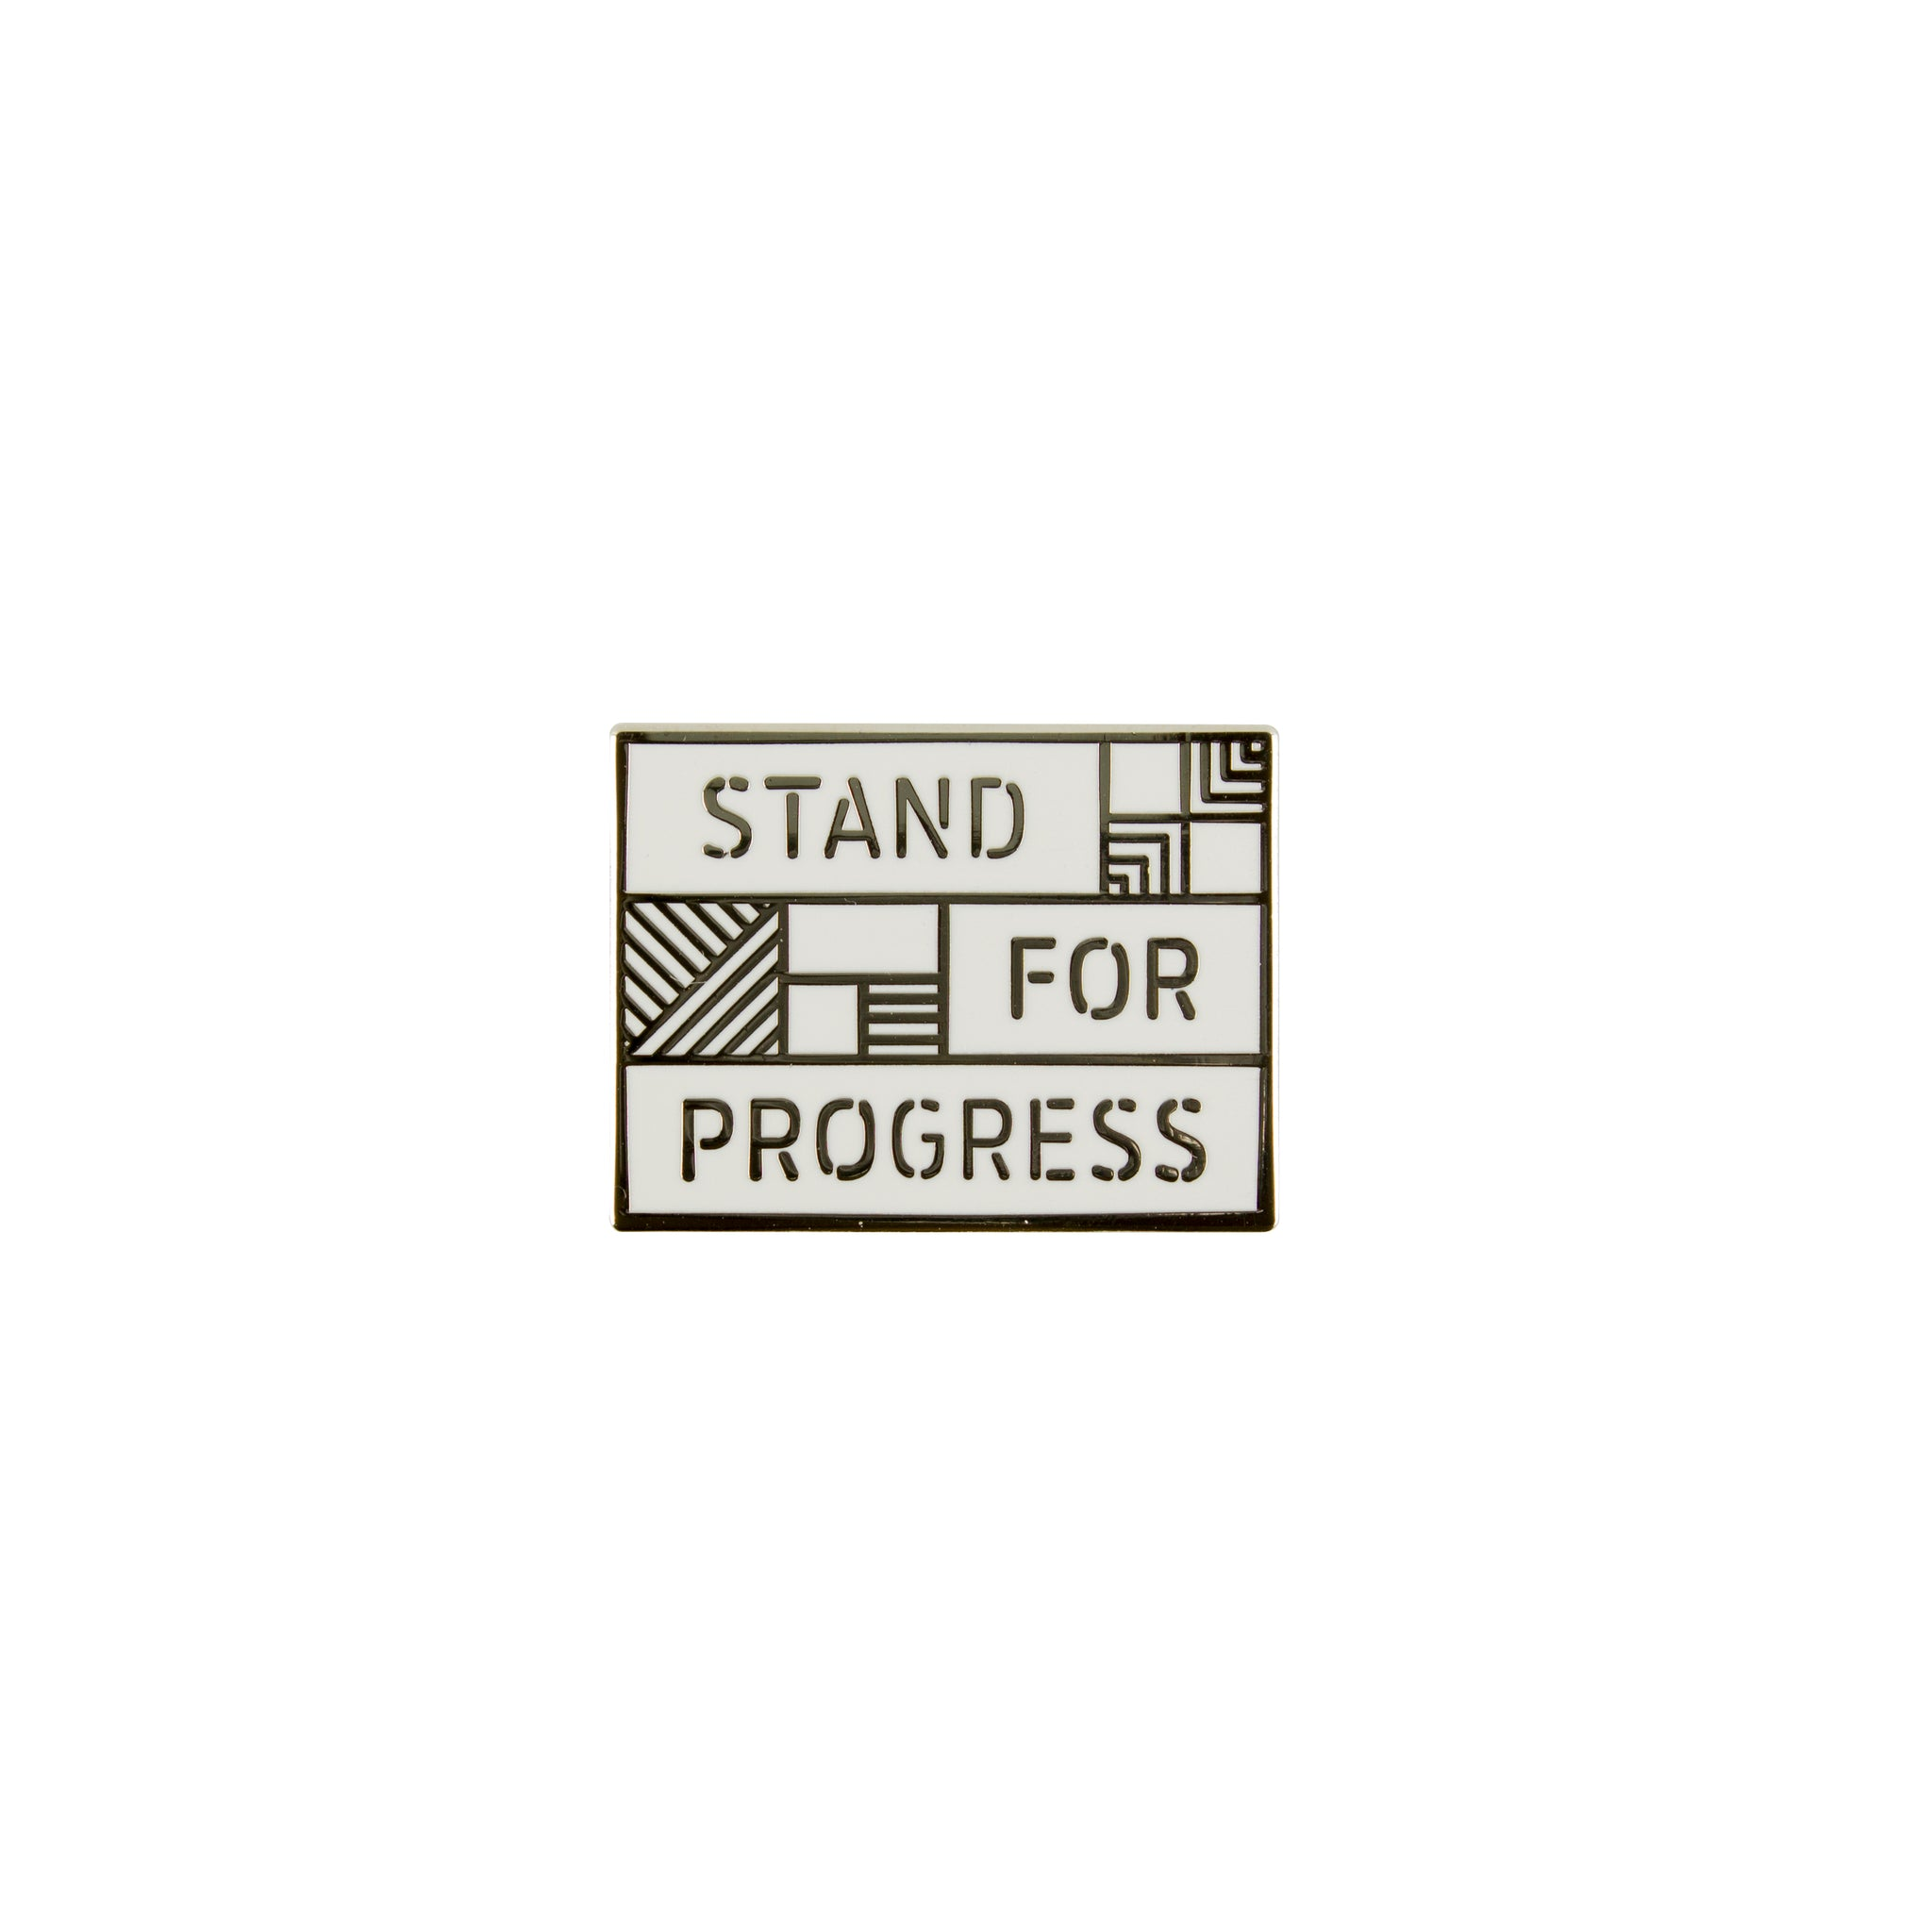 Bright_White - Stand For Progresse Pin Front View